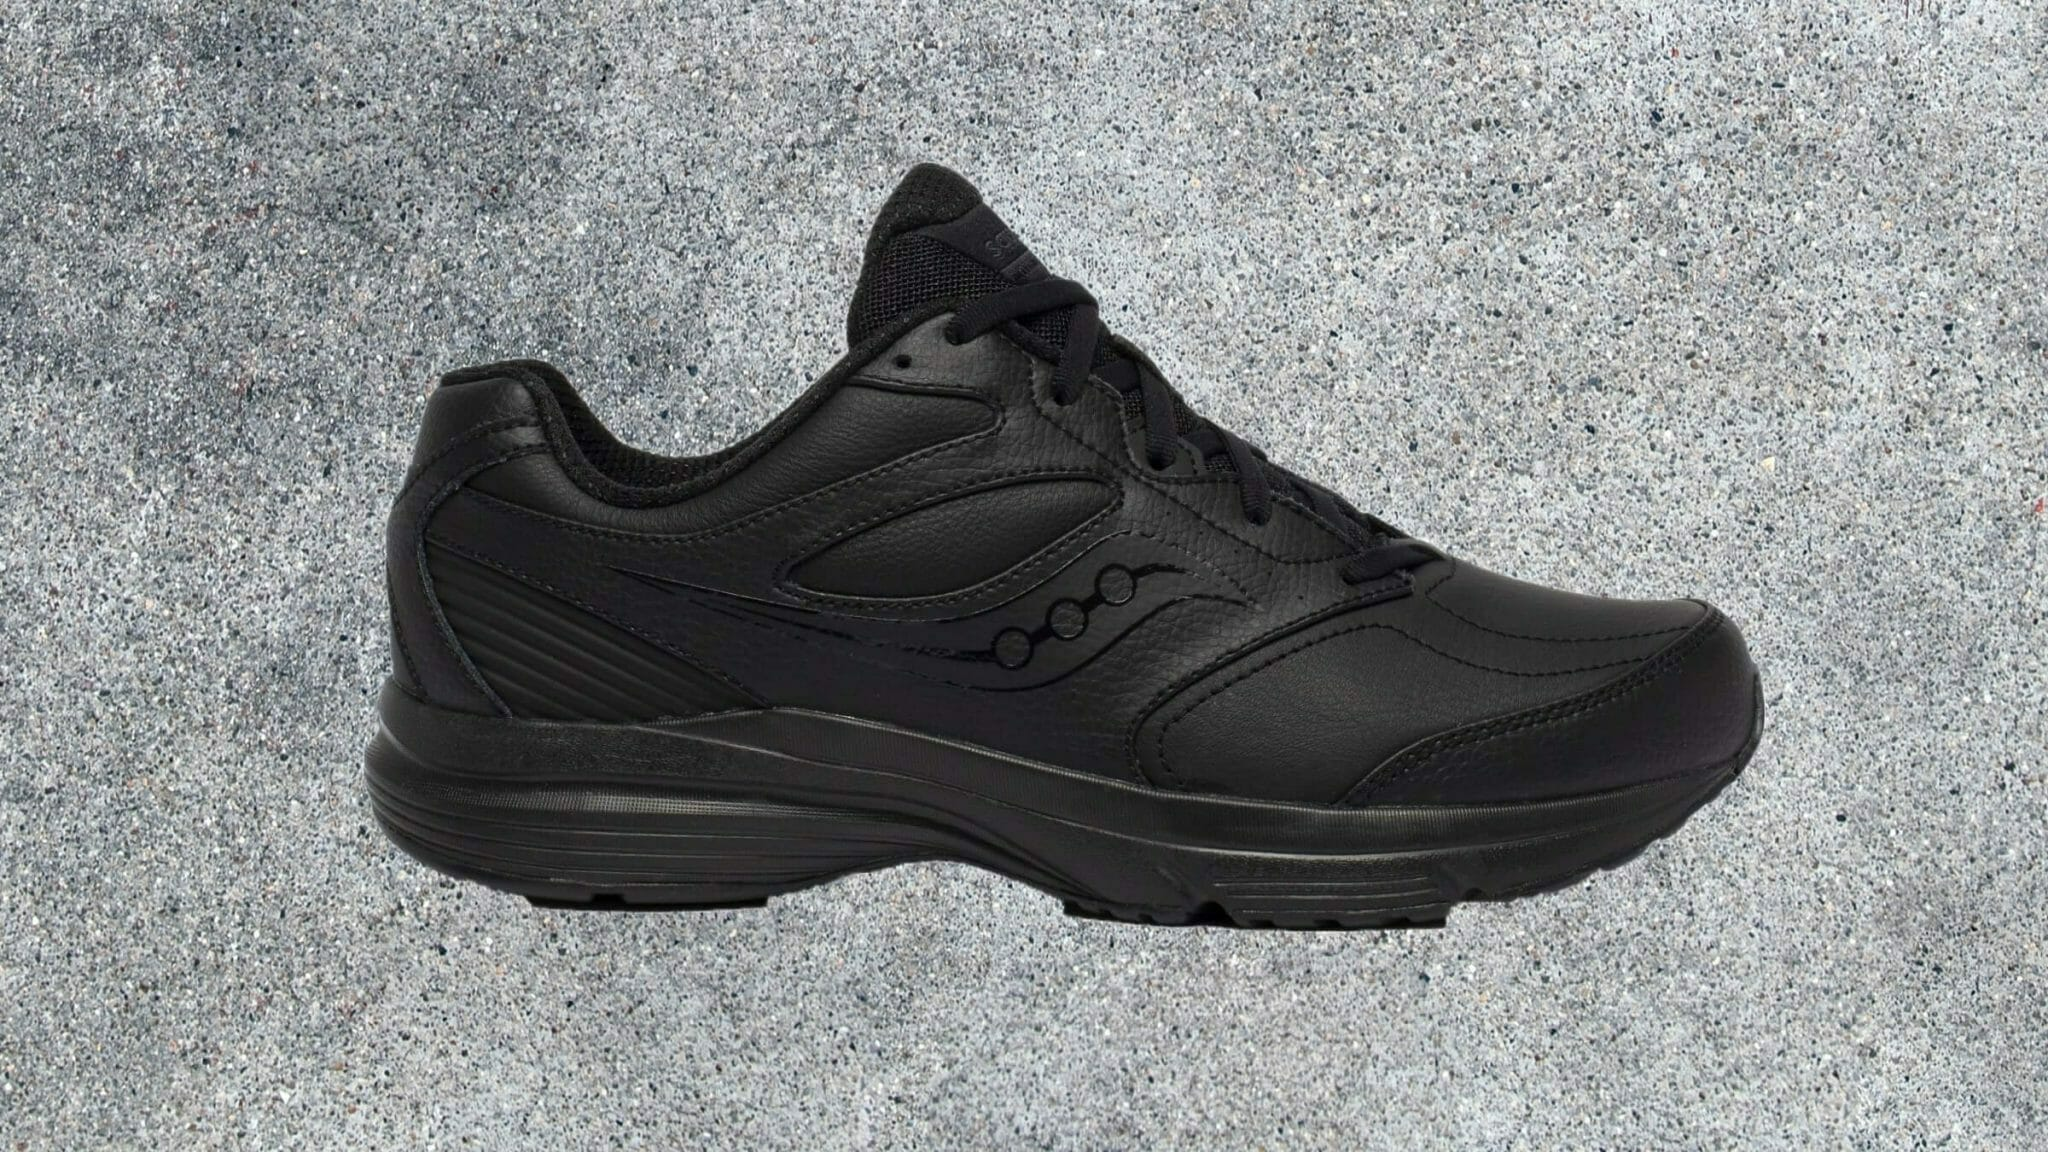 Saucony Integrity Walker 3 shoe for walking on concrete all day